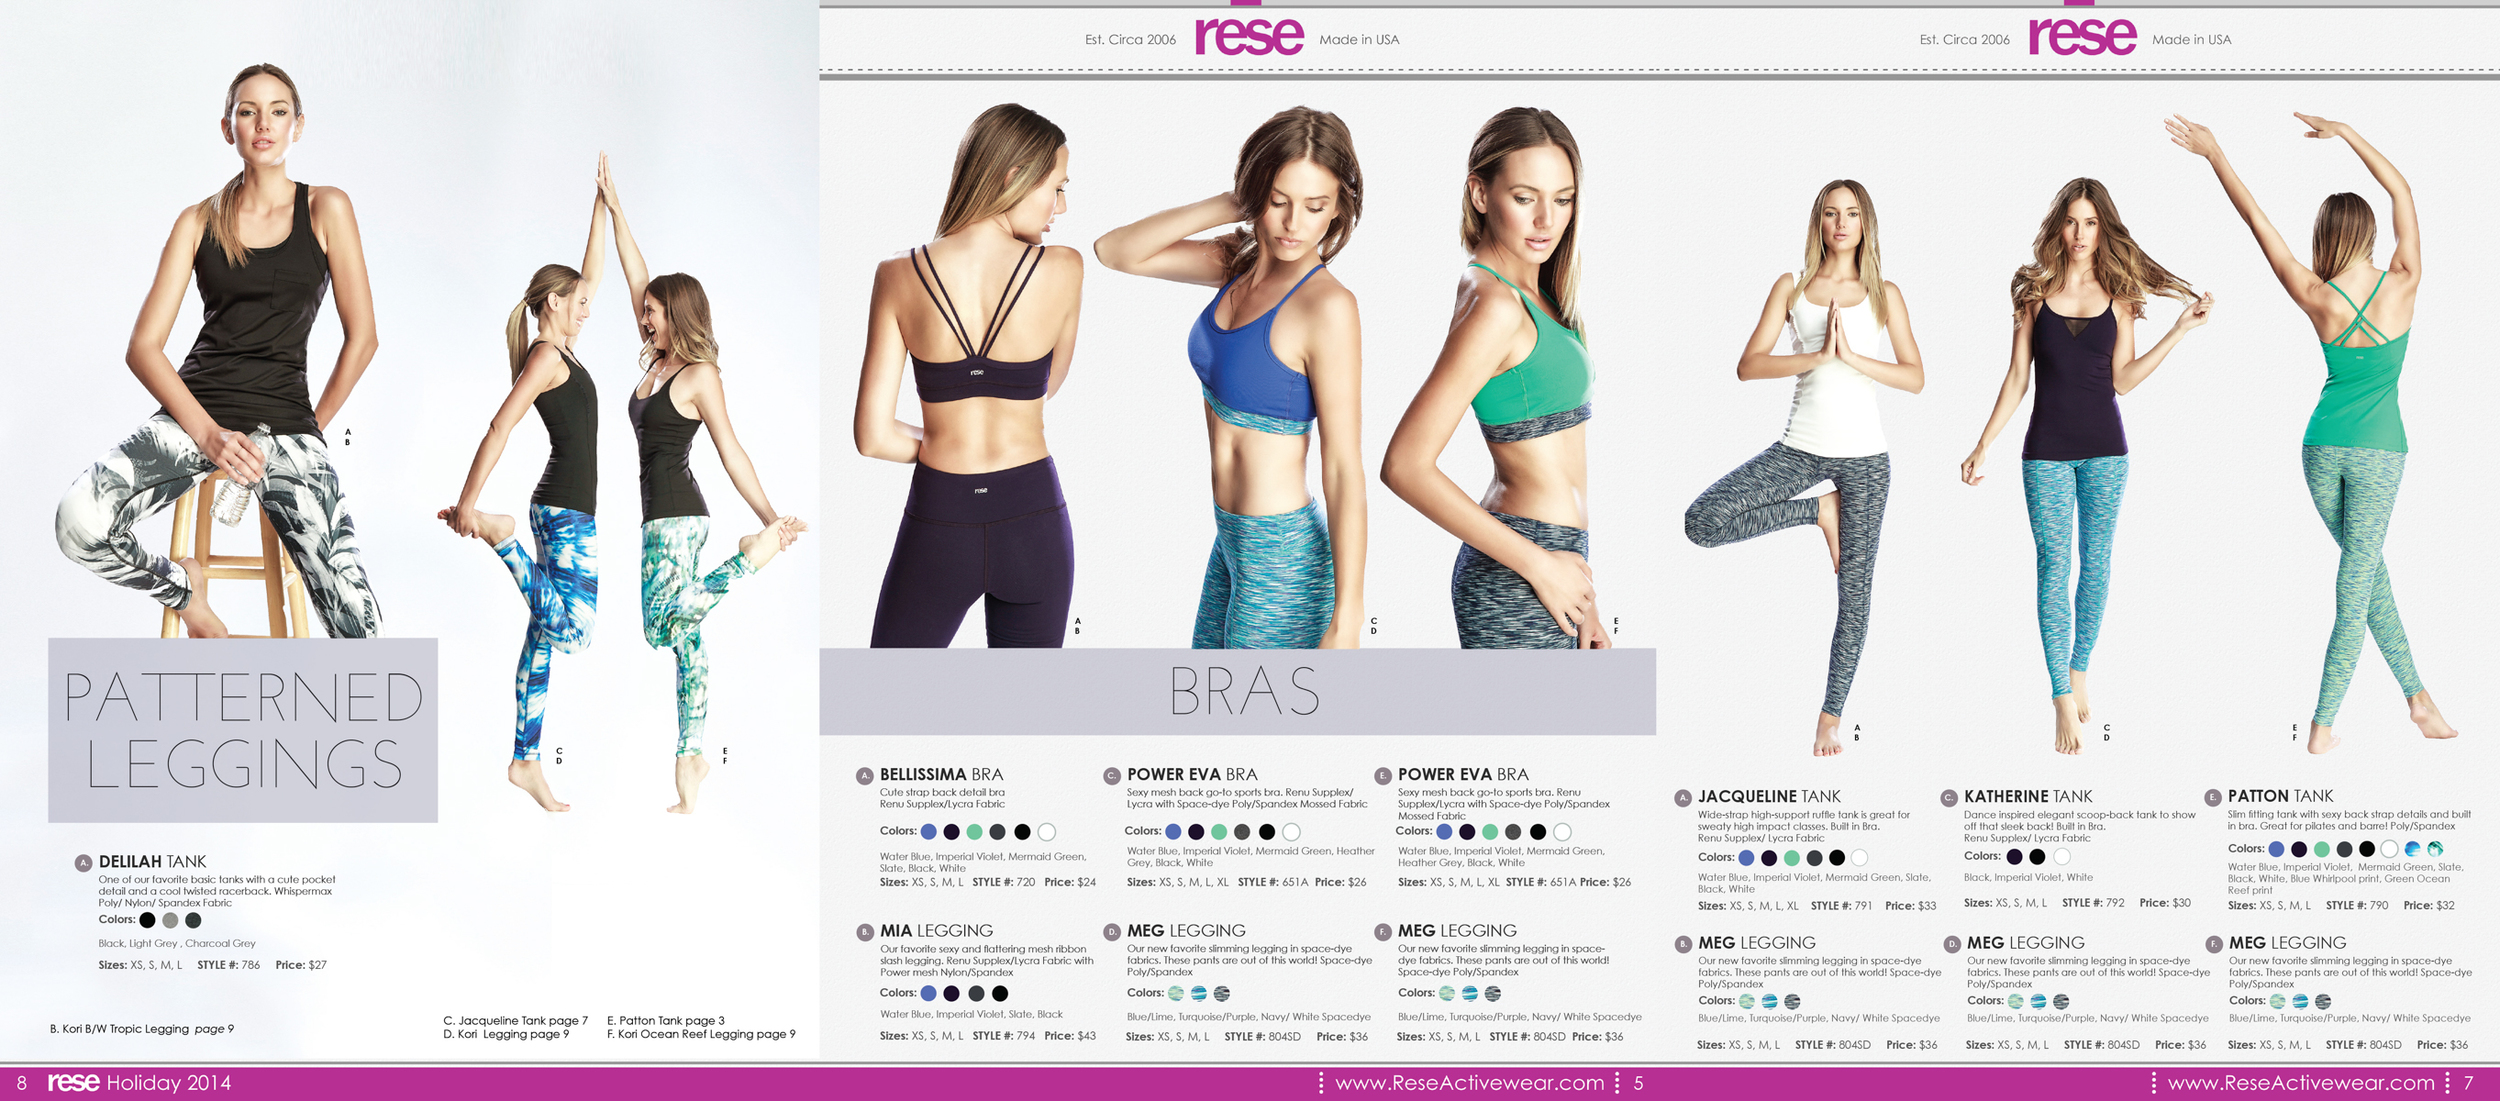 Rese Activewear Photographed by Bradford Rogne